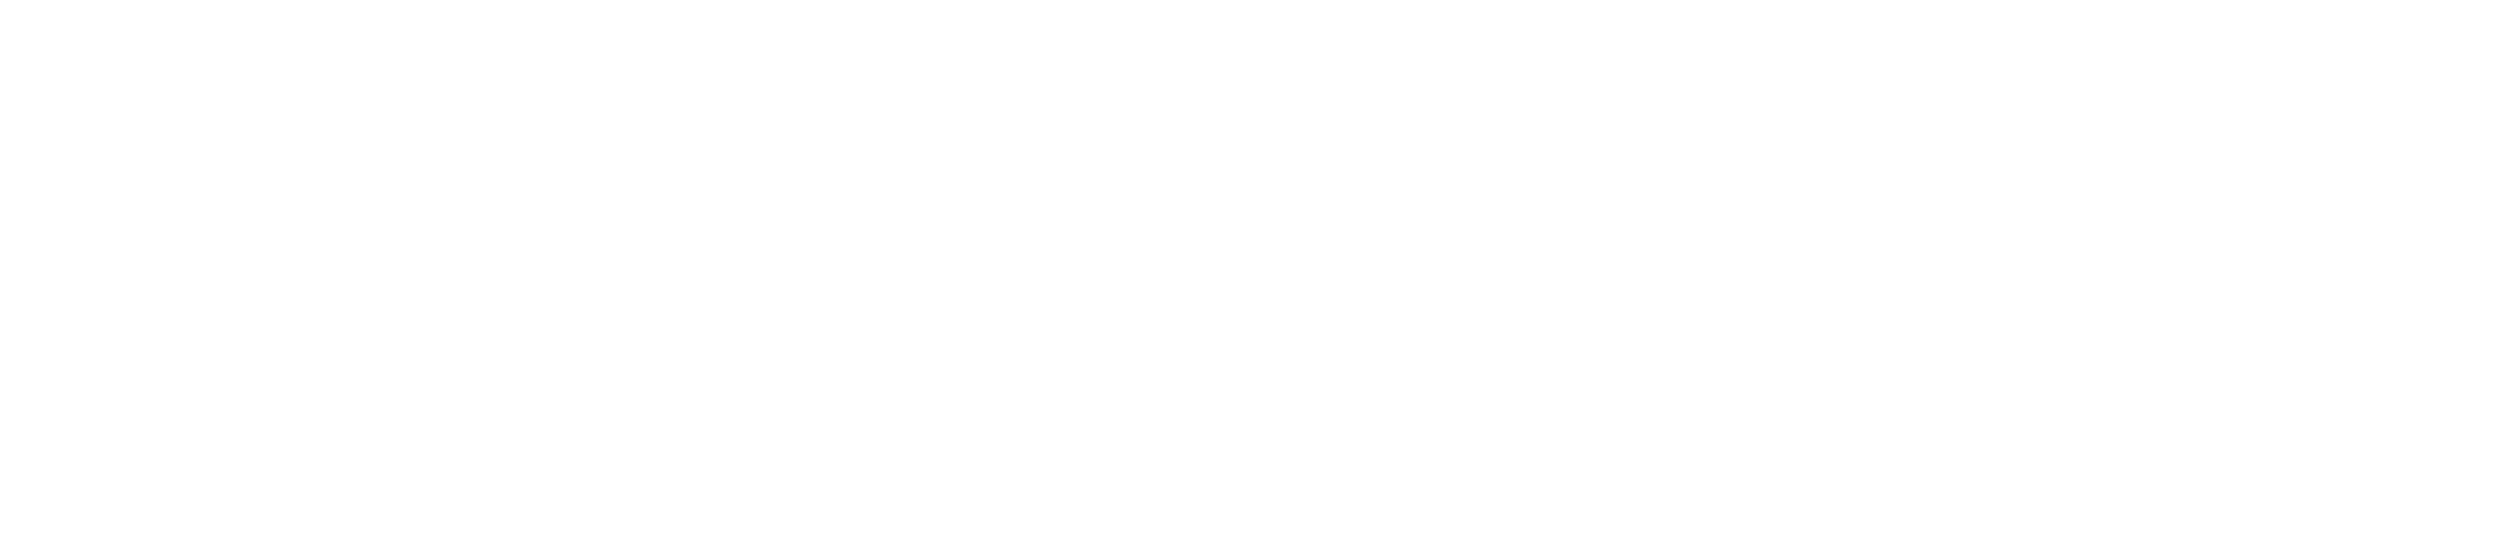 arkeo-logo_white.png